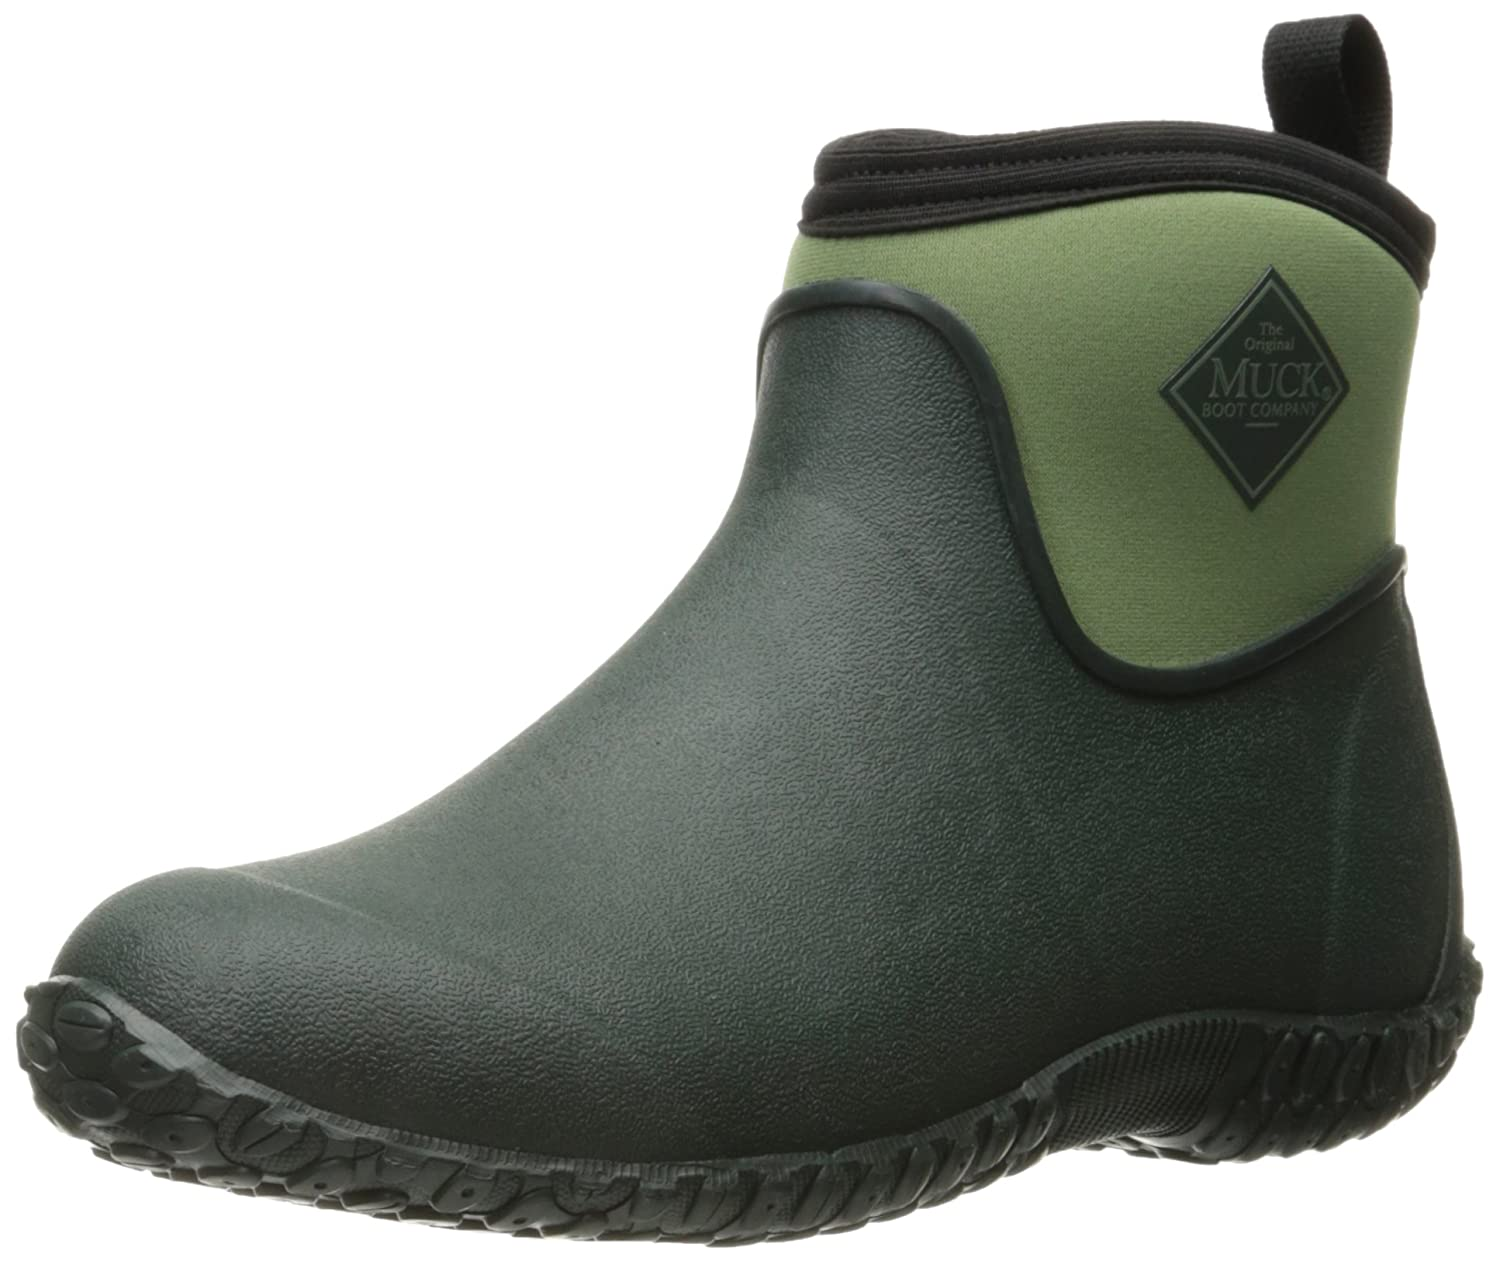 Muck Boots Muckster Ll Ankle-Height Women's Rubber Garden Boot